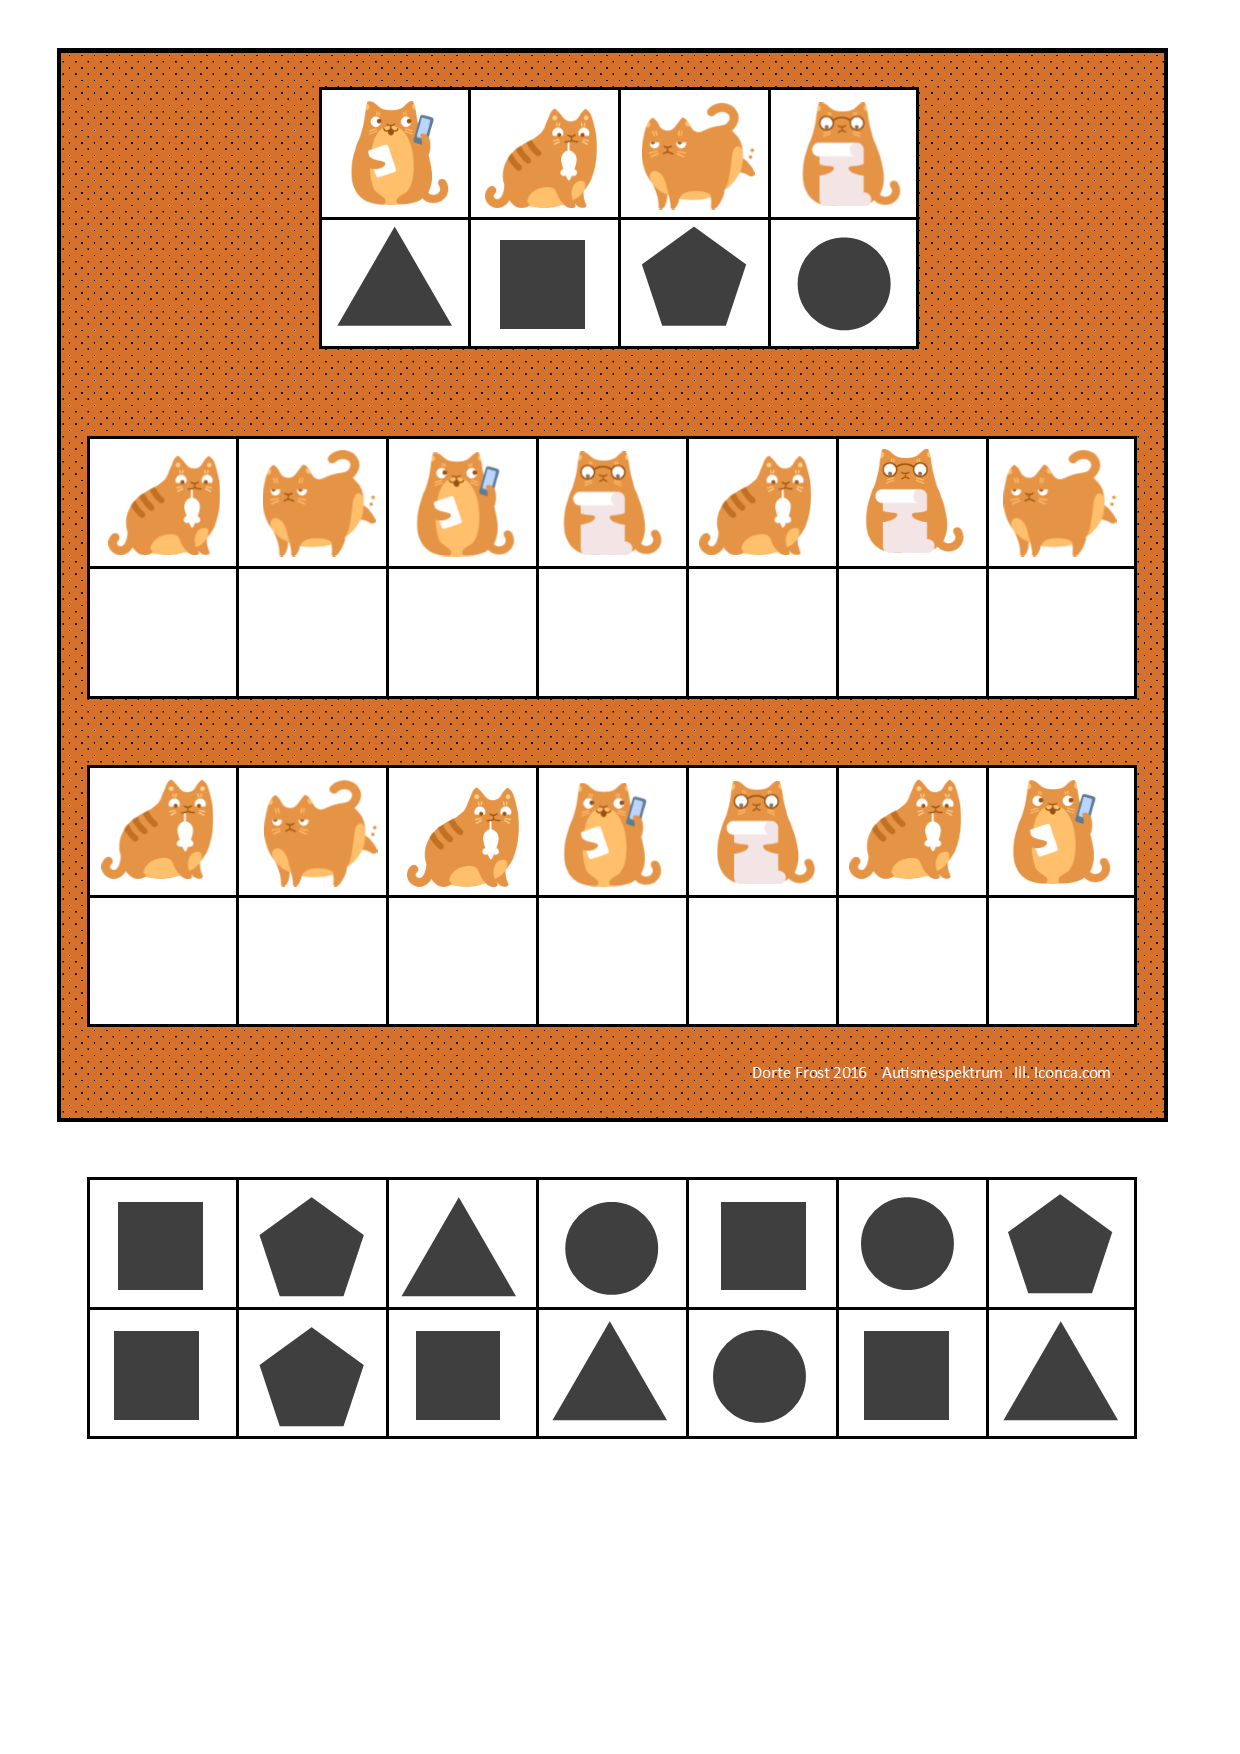 Board And Tiles For The Cat Visual Perception Game By